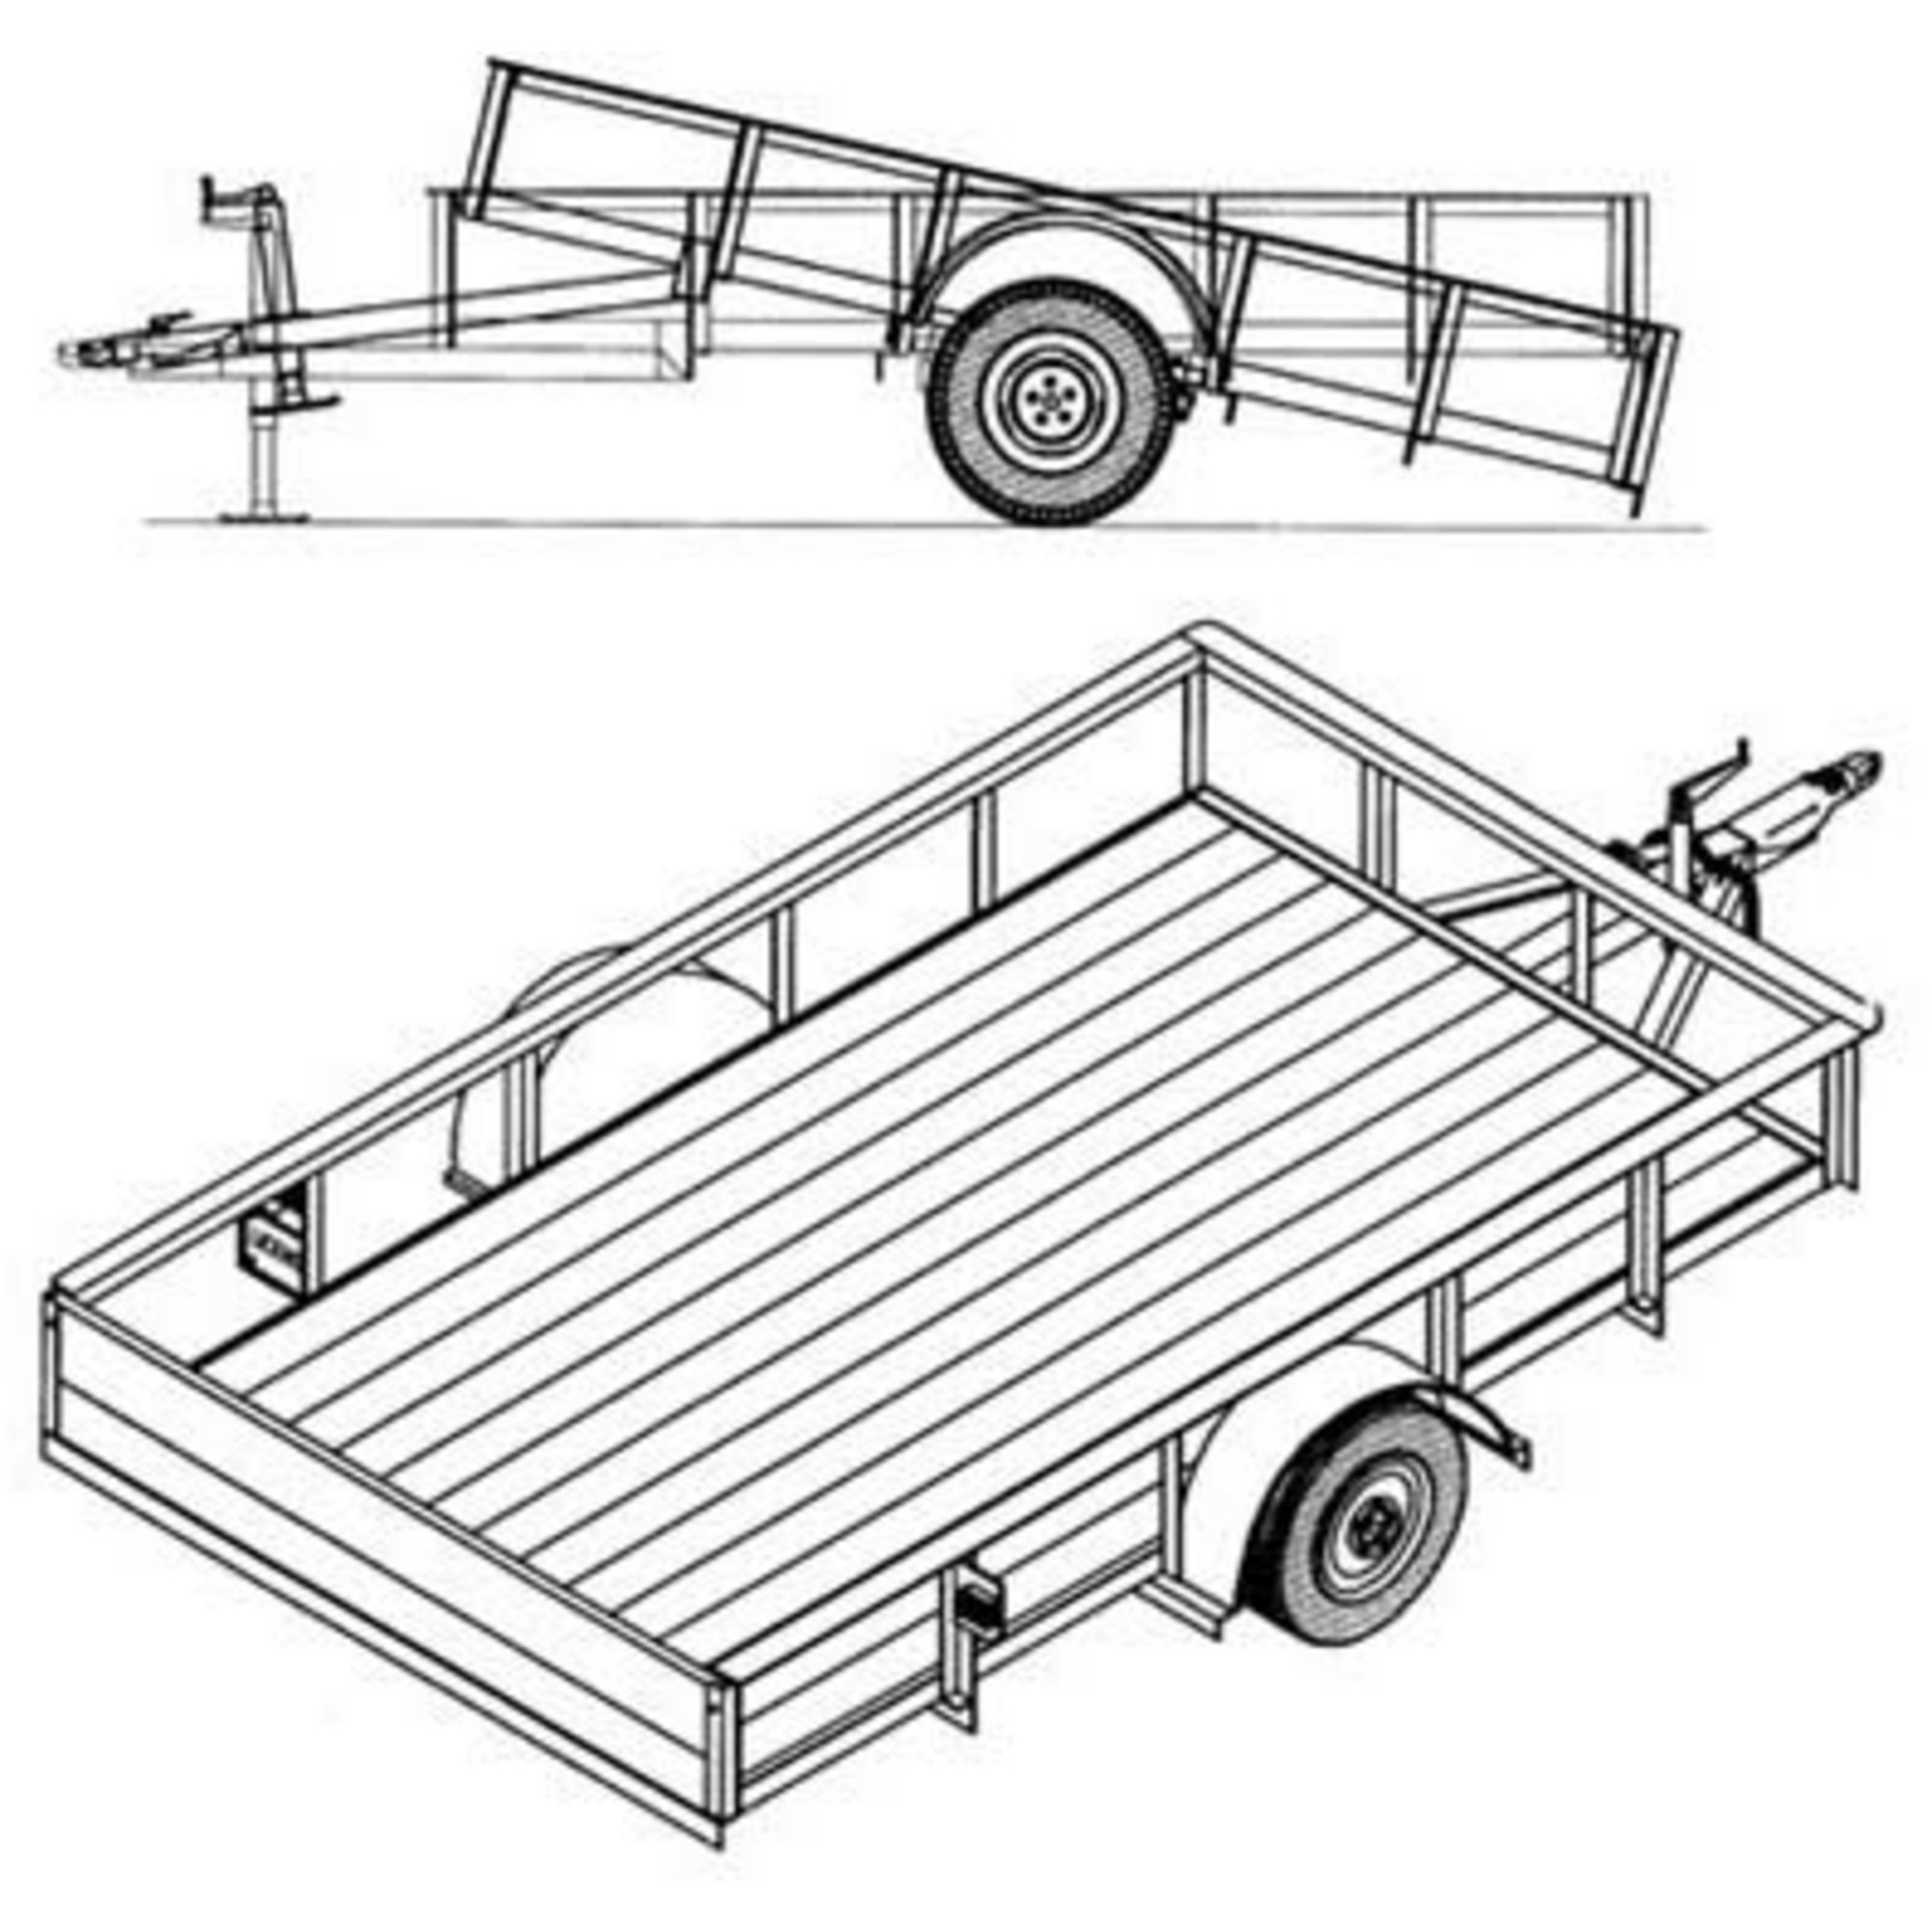 Trailer drawing at getdrawings free for personal use trailer 2000x2000 trailer blueprints 10ft x 6ft utility trailer northern tool malvernweather Gallery